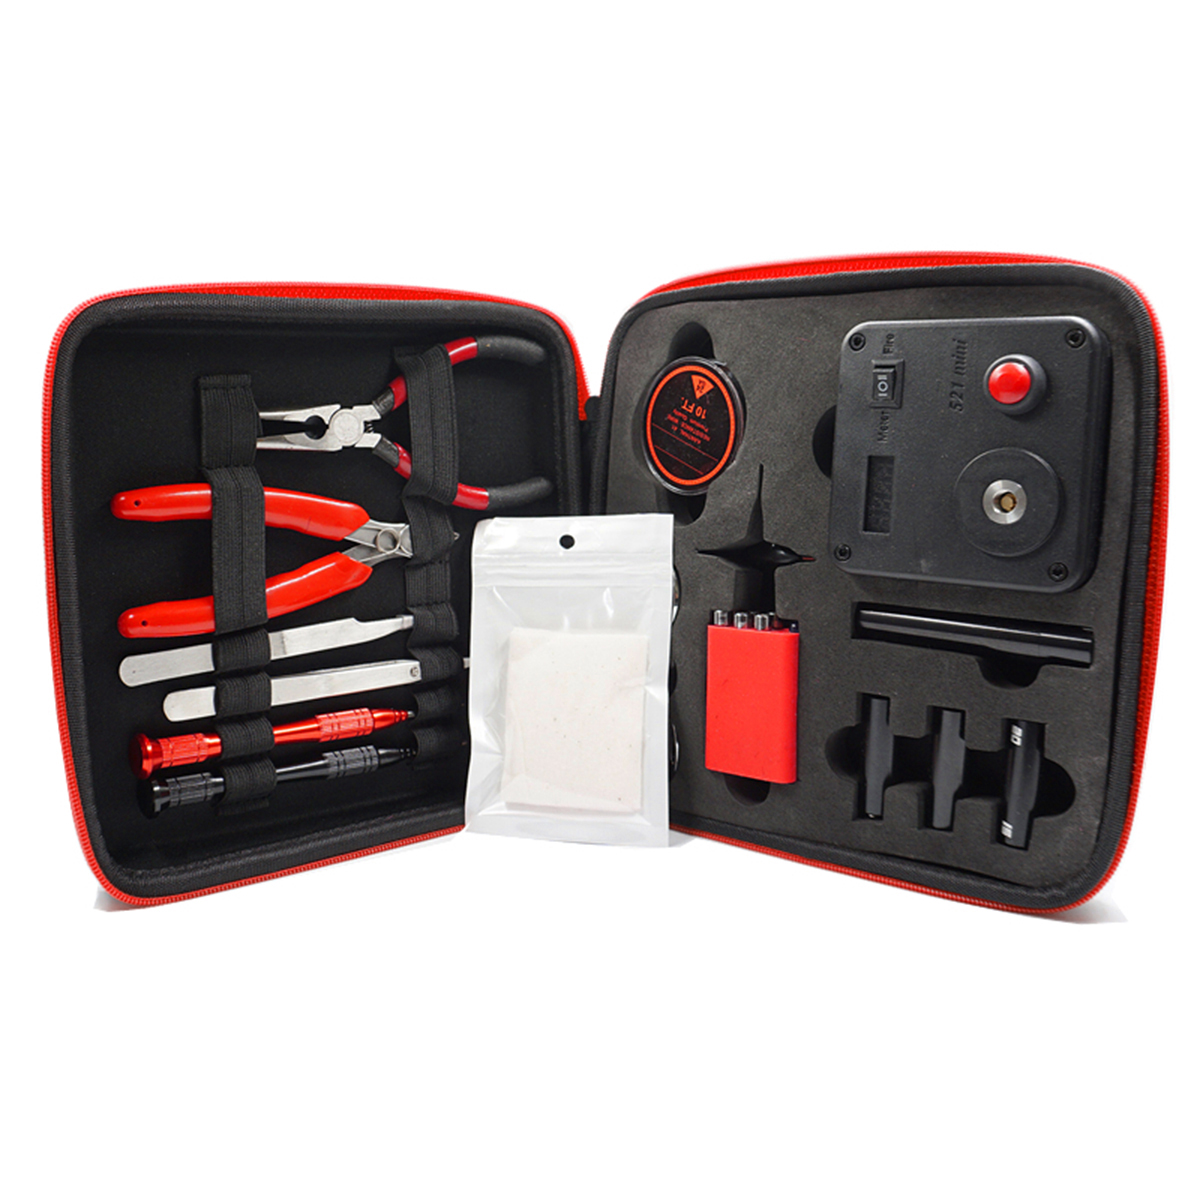 DSHA Update Coil Master V3 DIY Kit All-in-One CoilMaster V3+ Electronic Cigarette RDA Atomizer coil tool bag Accessories Vape